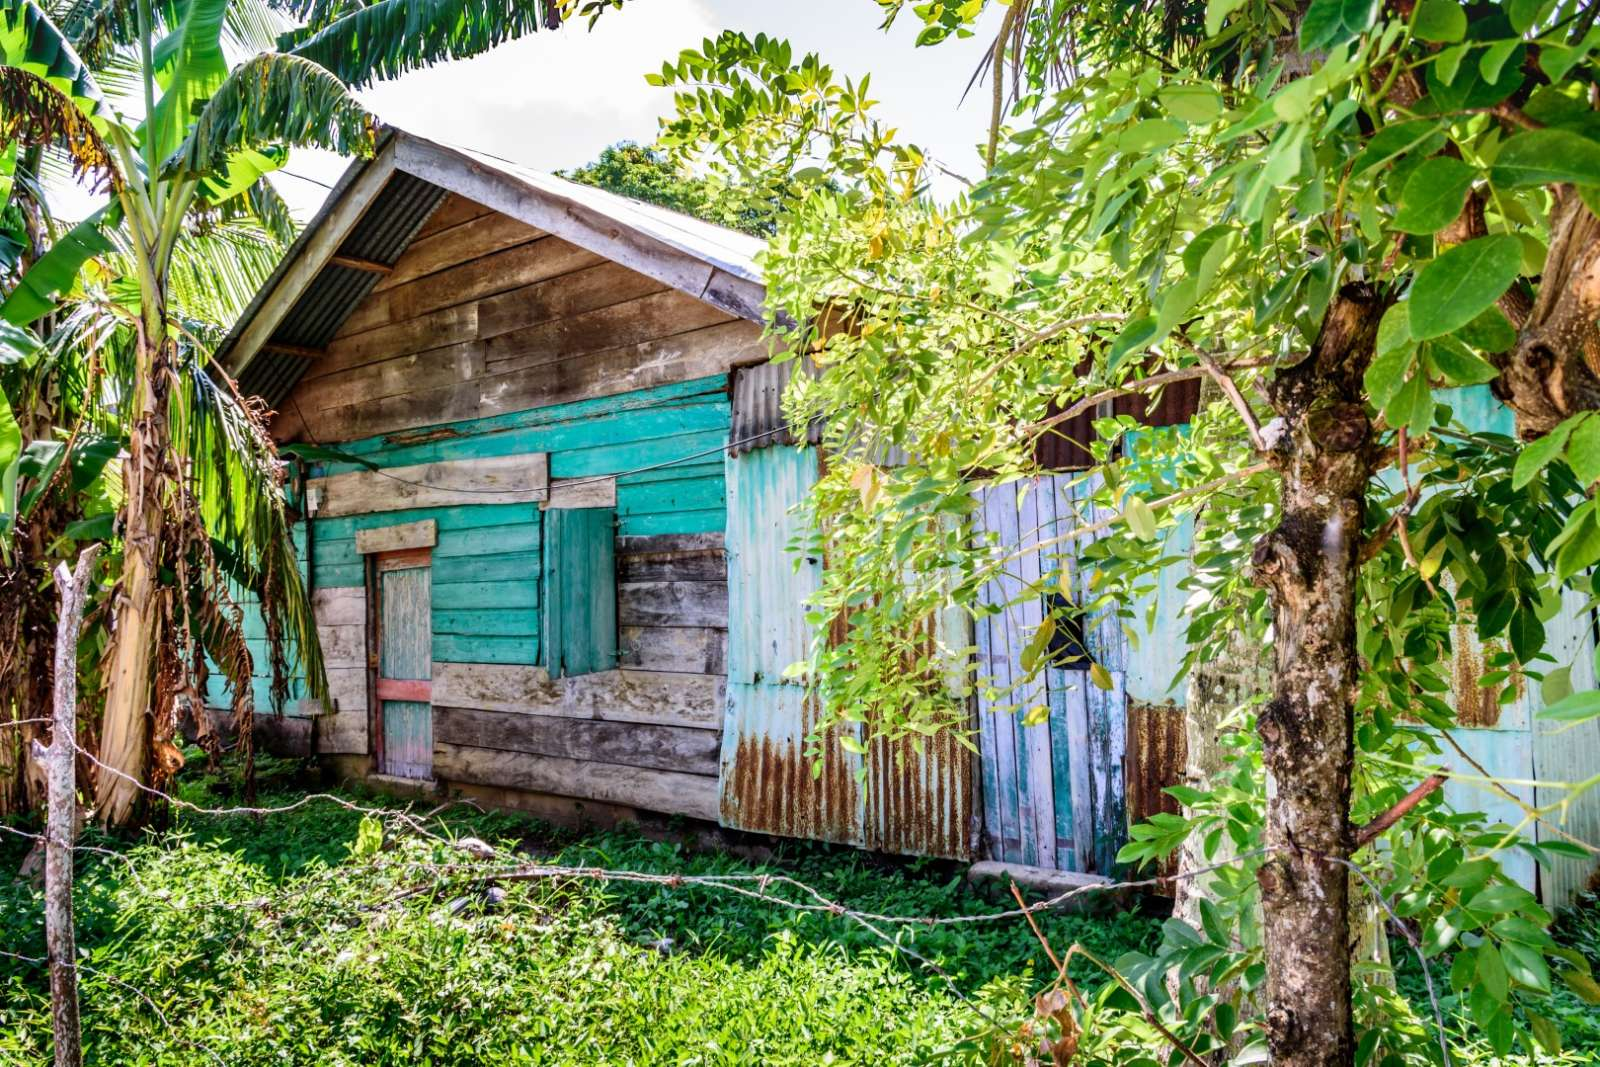 Run-down wooden house in Livingston, Guatemala